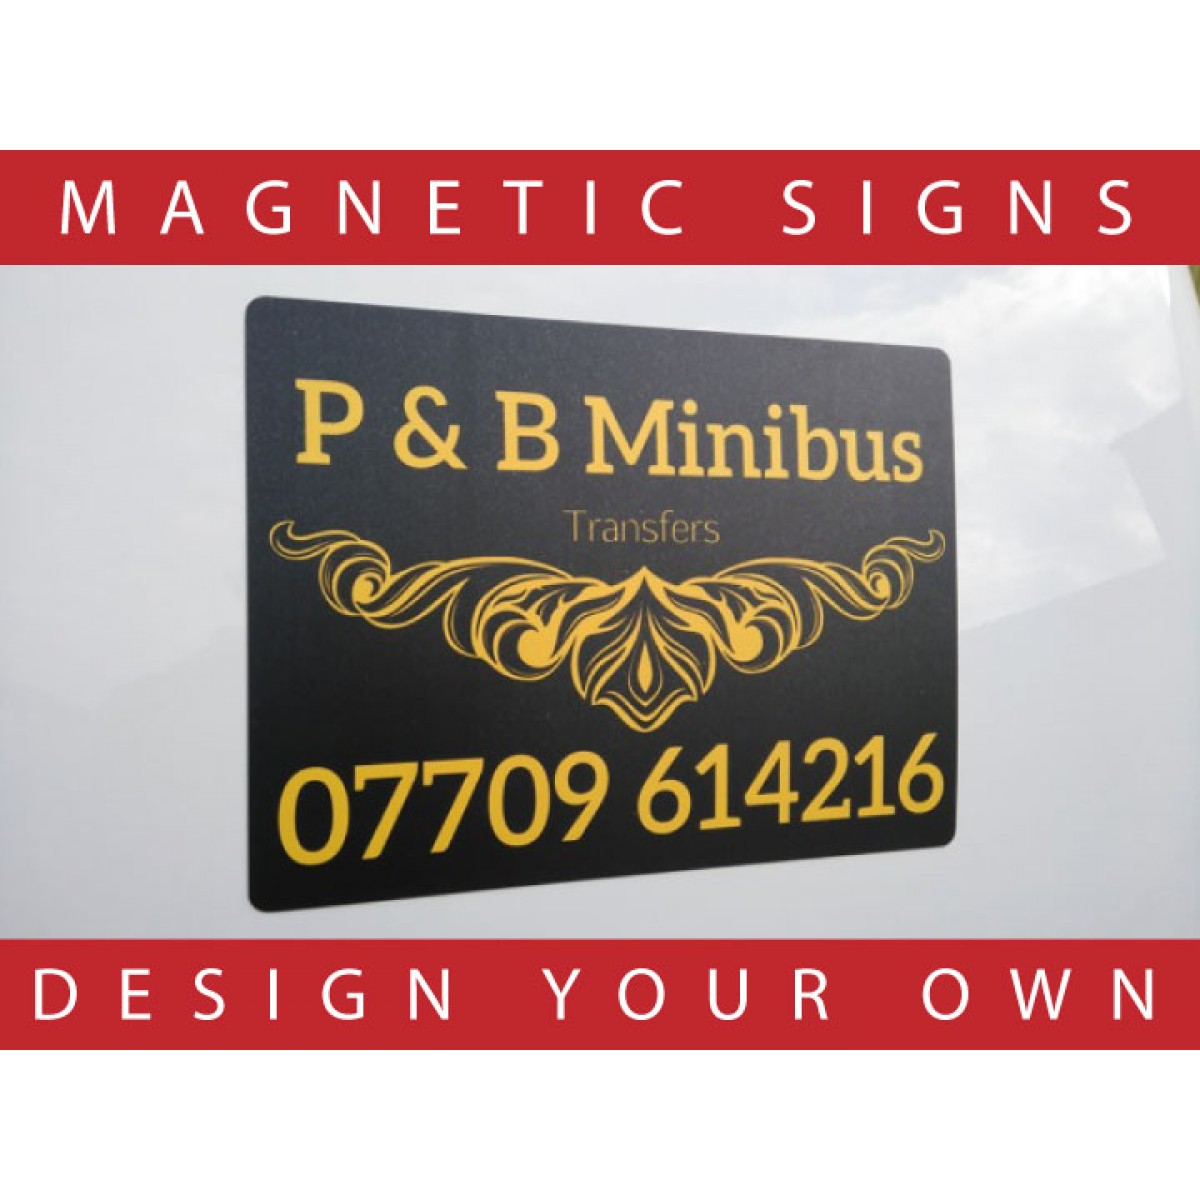 Magnetic Signs For Cars And Vans Design Your Own The